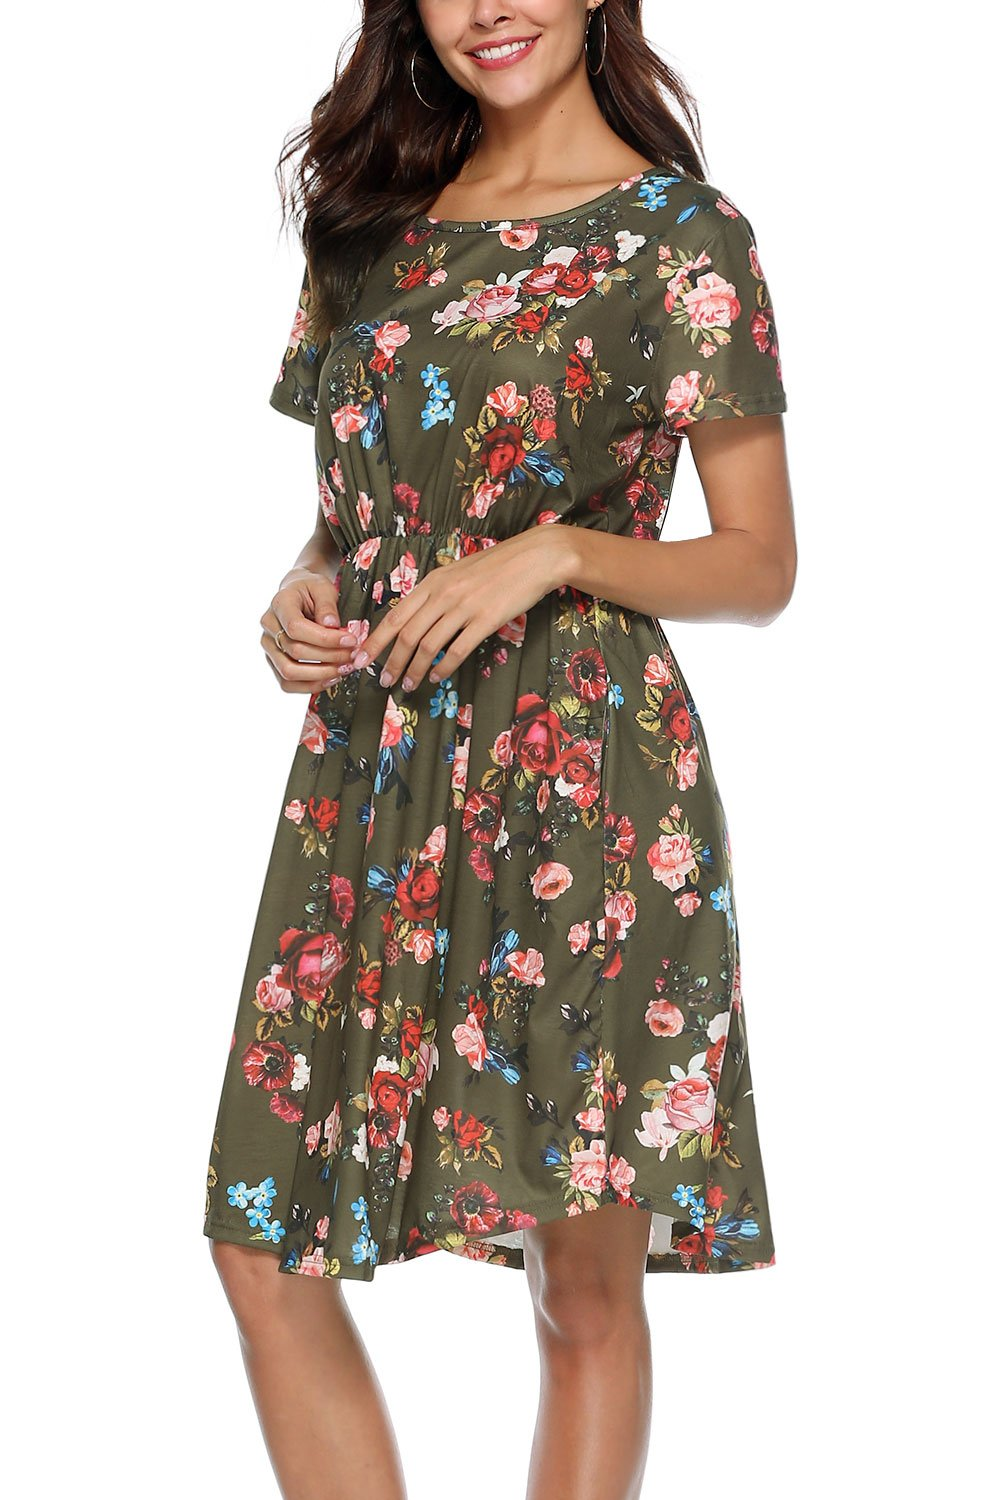 c50205e9e167 NICIAS Women Floral Short Sleeve Tunic Vintage Midi Casual Dress with  Pockets Army Green L